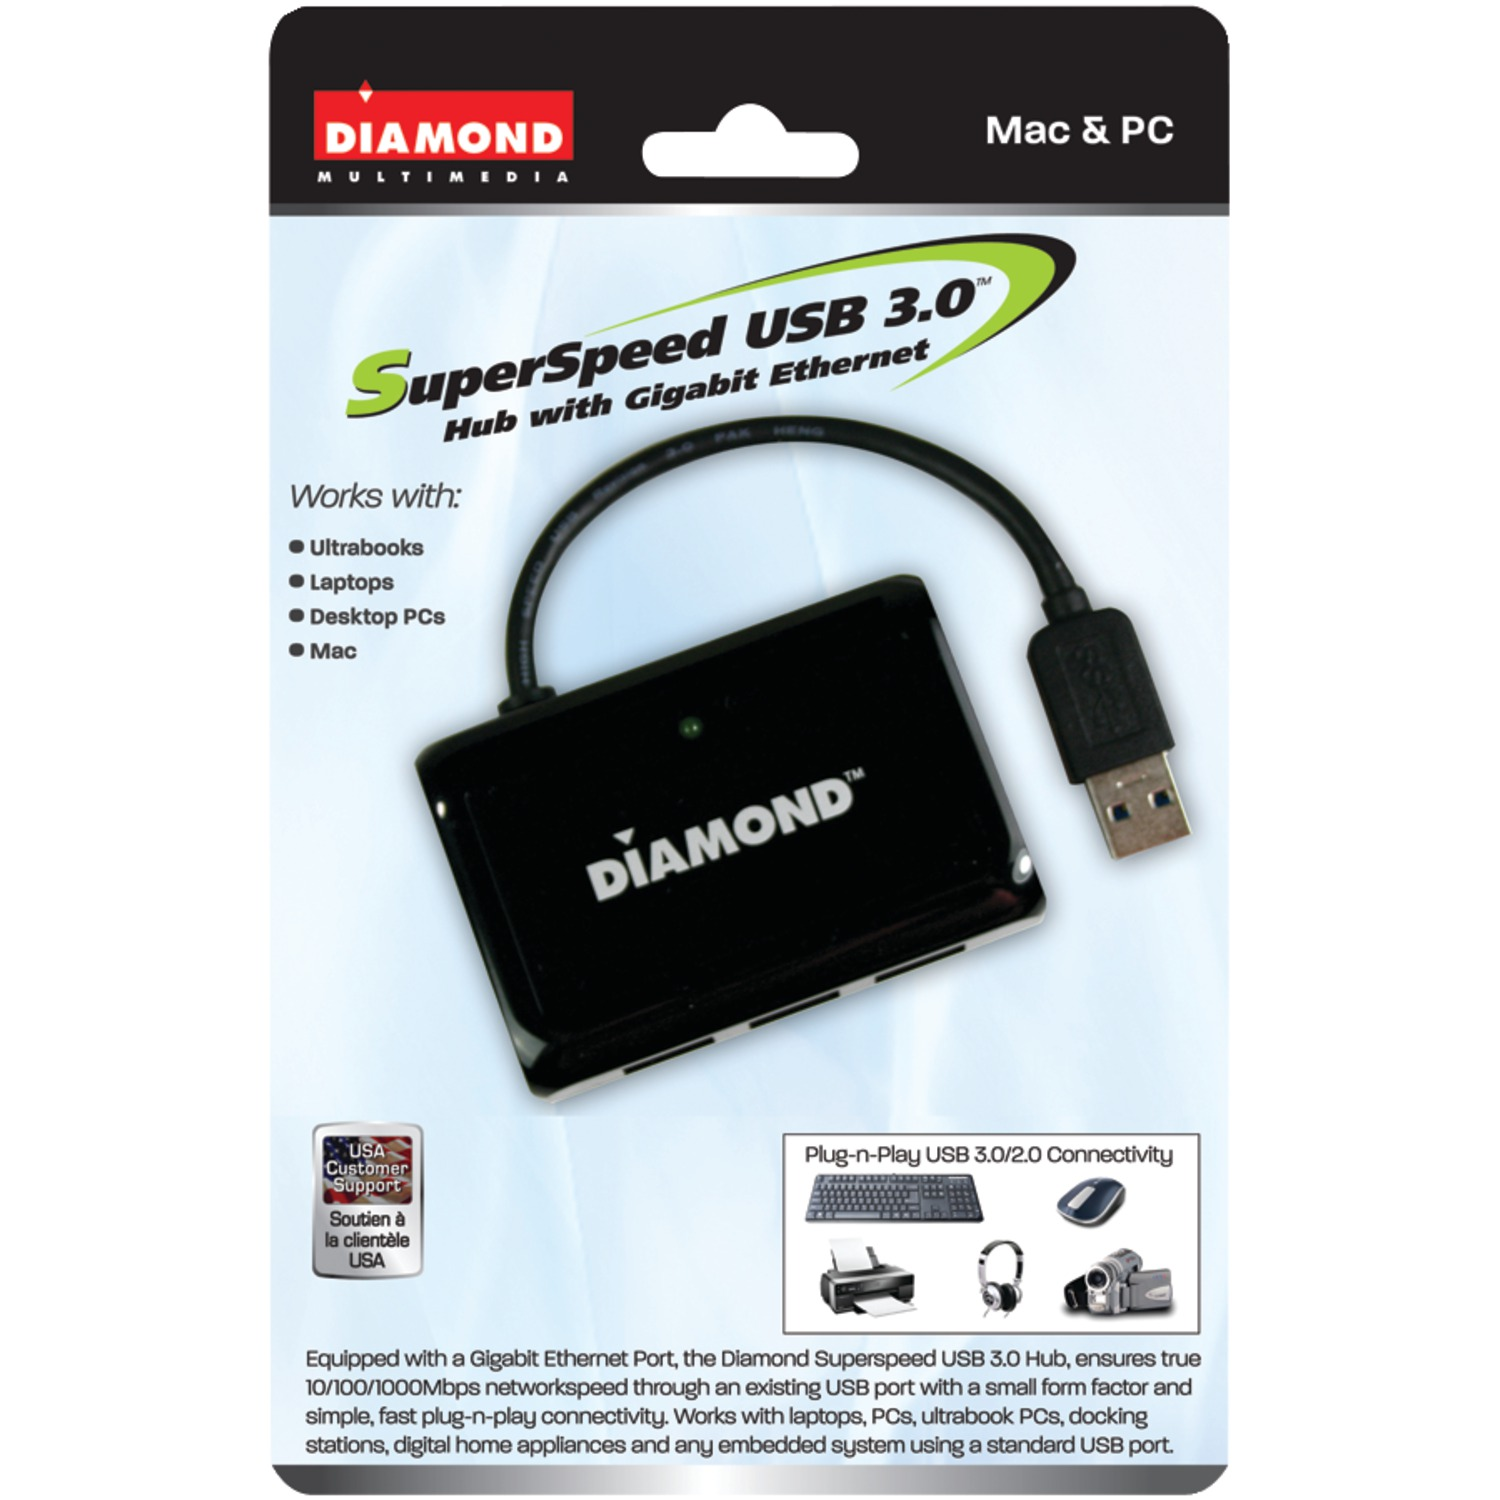 DIAMOND USB303HE NETWORK ADAPTER WINDOWS 8 DRIVER